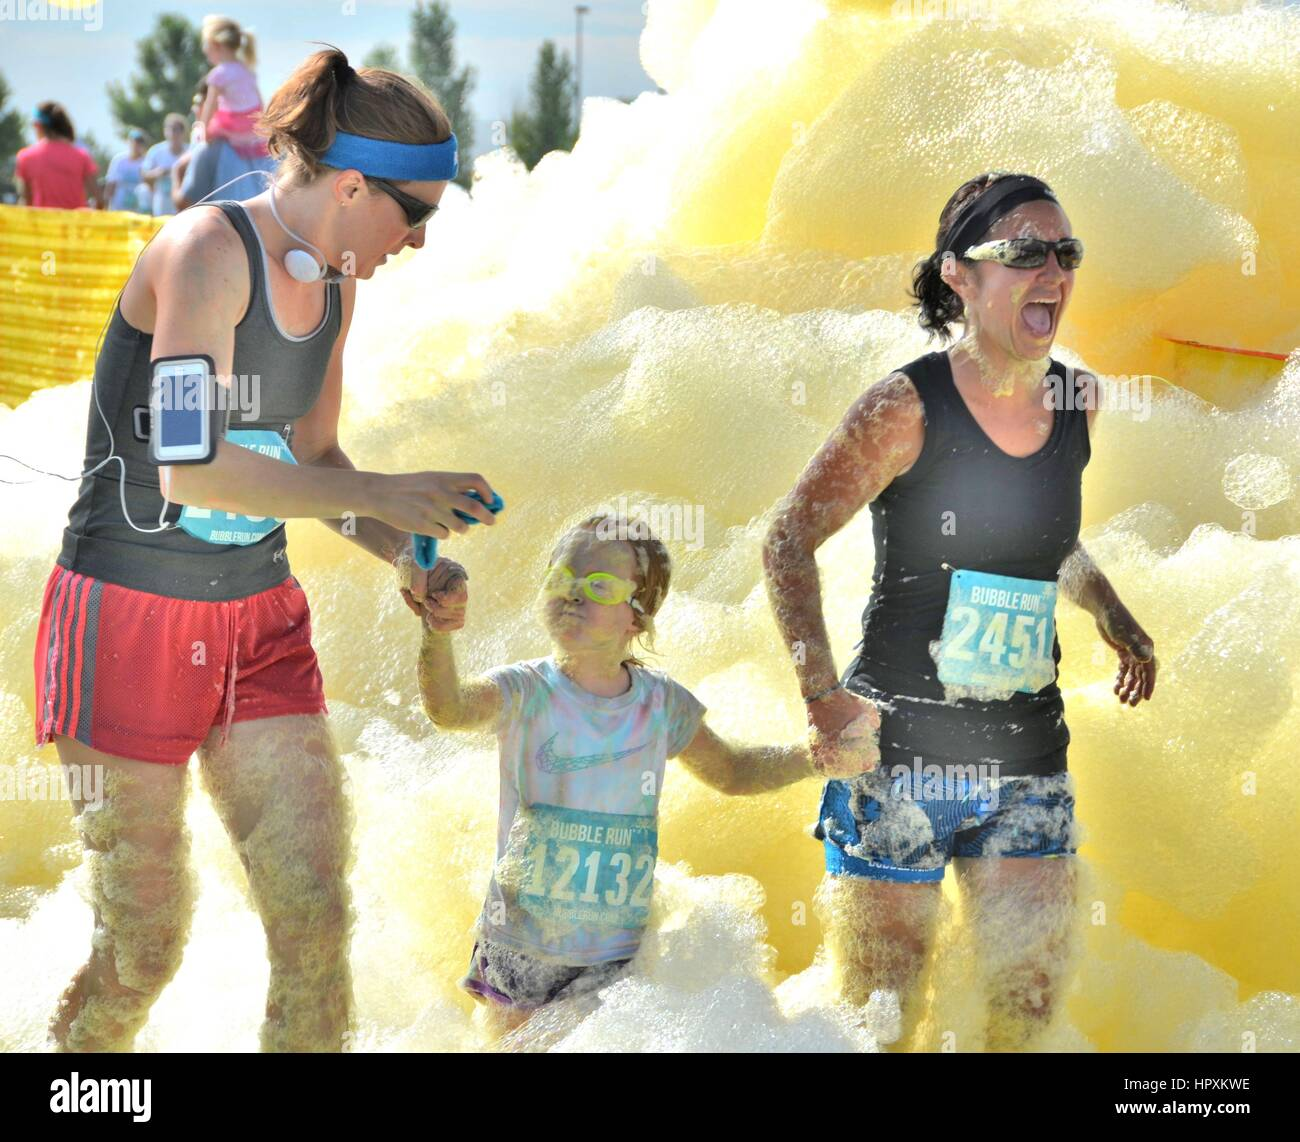 Bubble Run Fundraiser - Stock Image